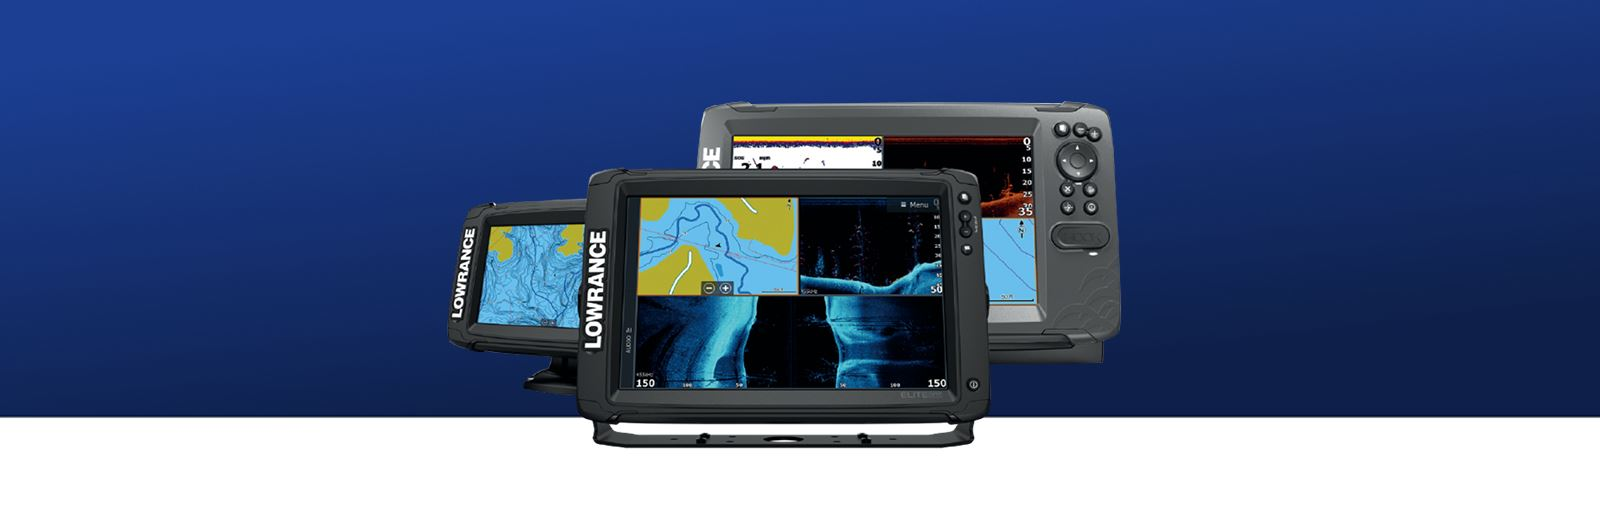 Promo-Final-Background-Lowrance.jpg